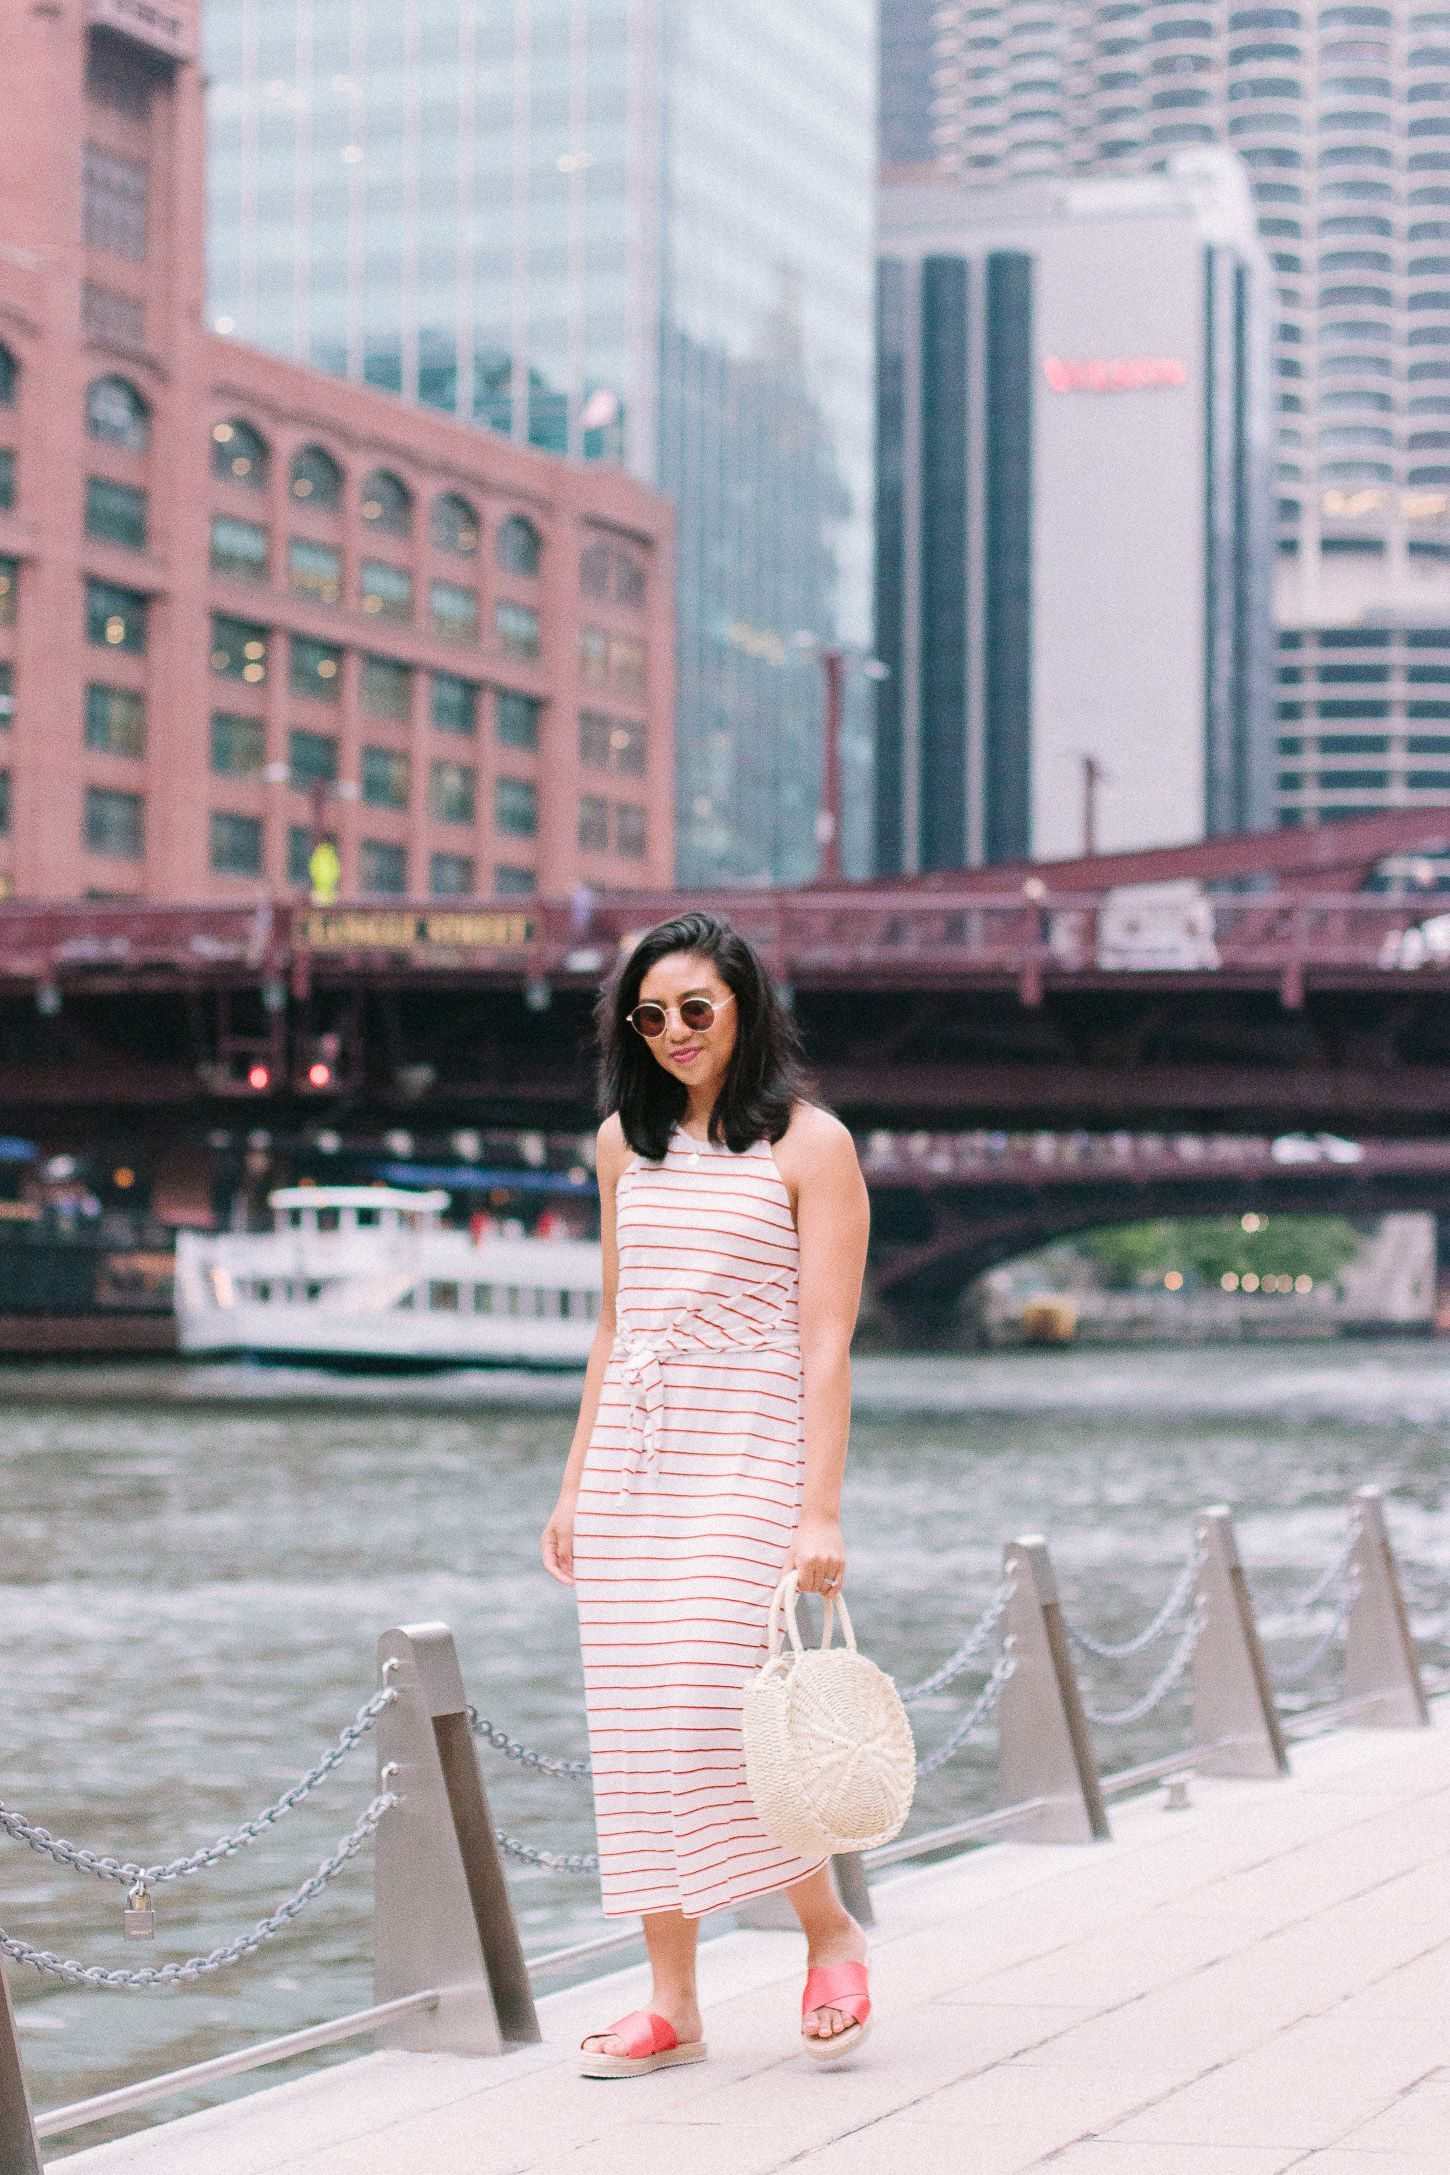 Best wedding dresses for travel  One of My Favorite Summer Spots is the Chicago Riverwalk  RDus